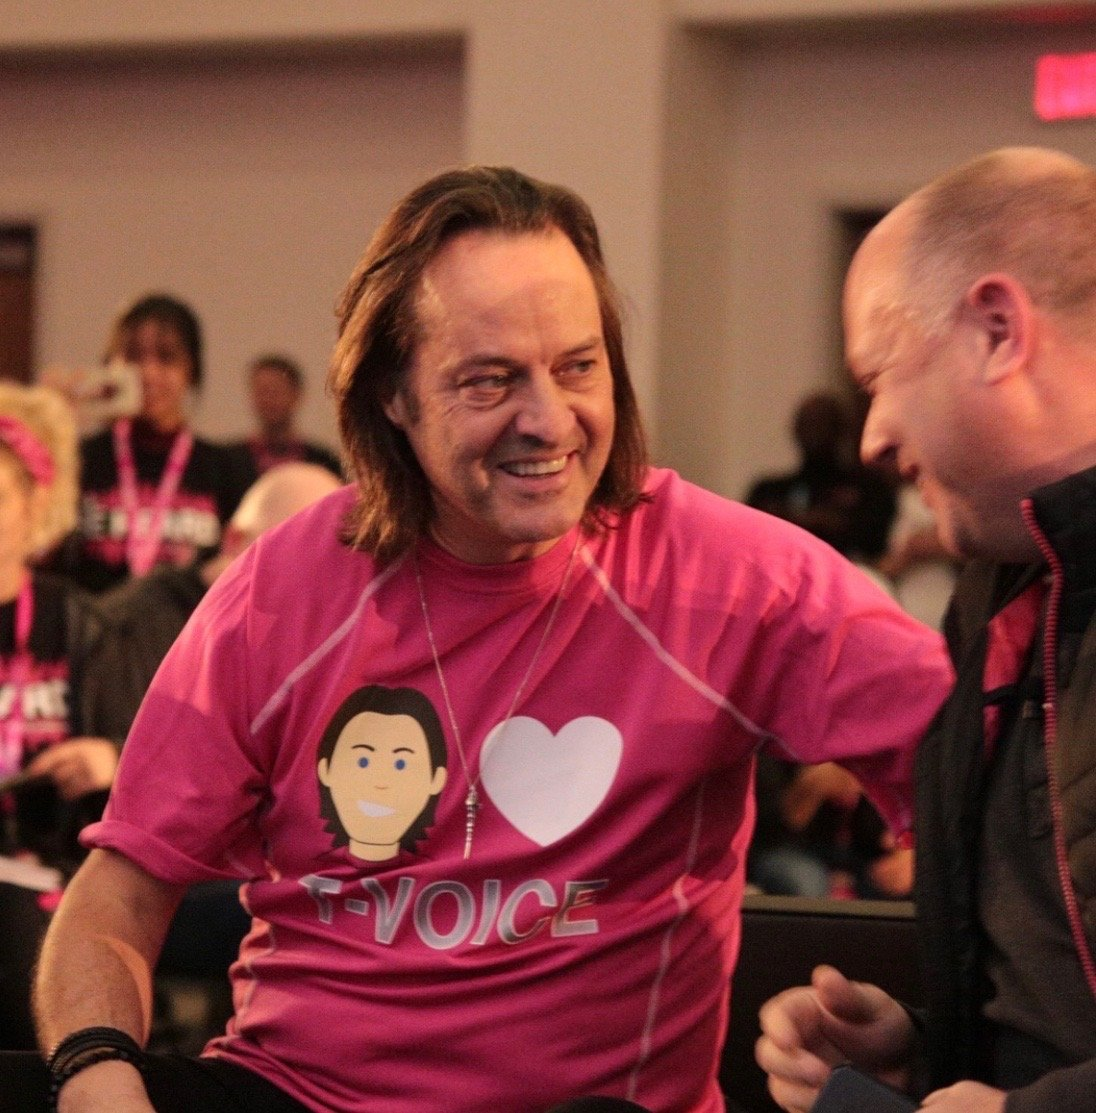 """Thank you"" will never be enough to show my gratitude and admiration for @JohnLegere (or #LegereTheLegend!) Without him, the #NewTMobile wouldn't be possible! Fortunately, with @MikeSievert as our leader, I'm as excited as ever for our future! Who's with me?"